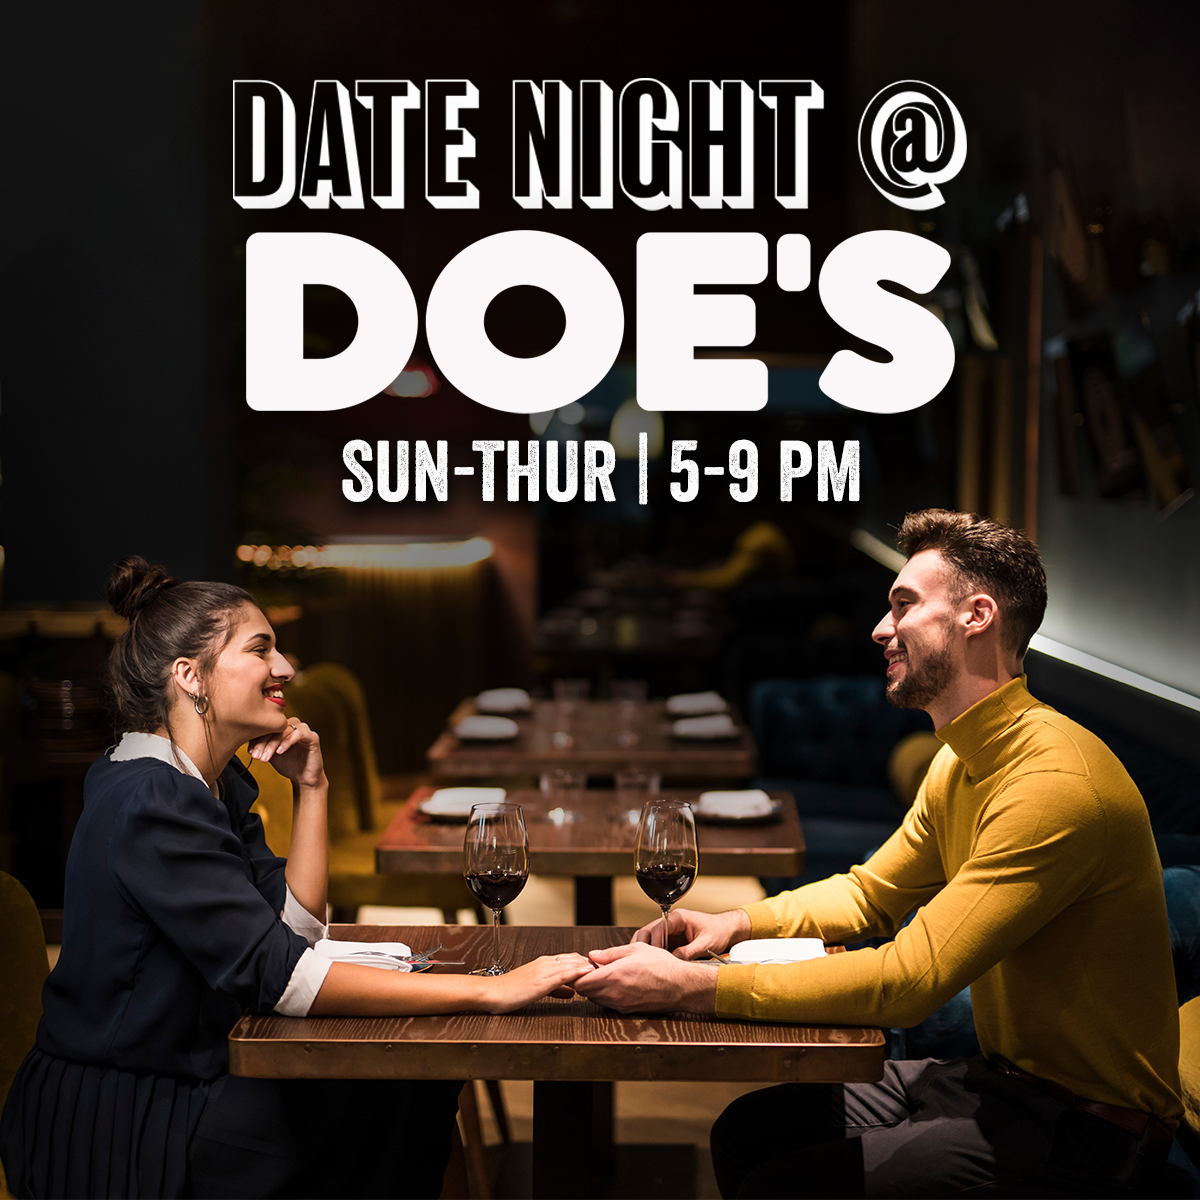 Make your date night a Doe's date night